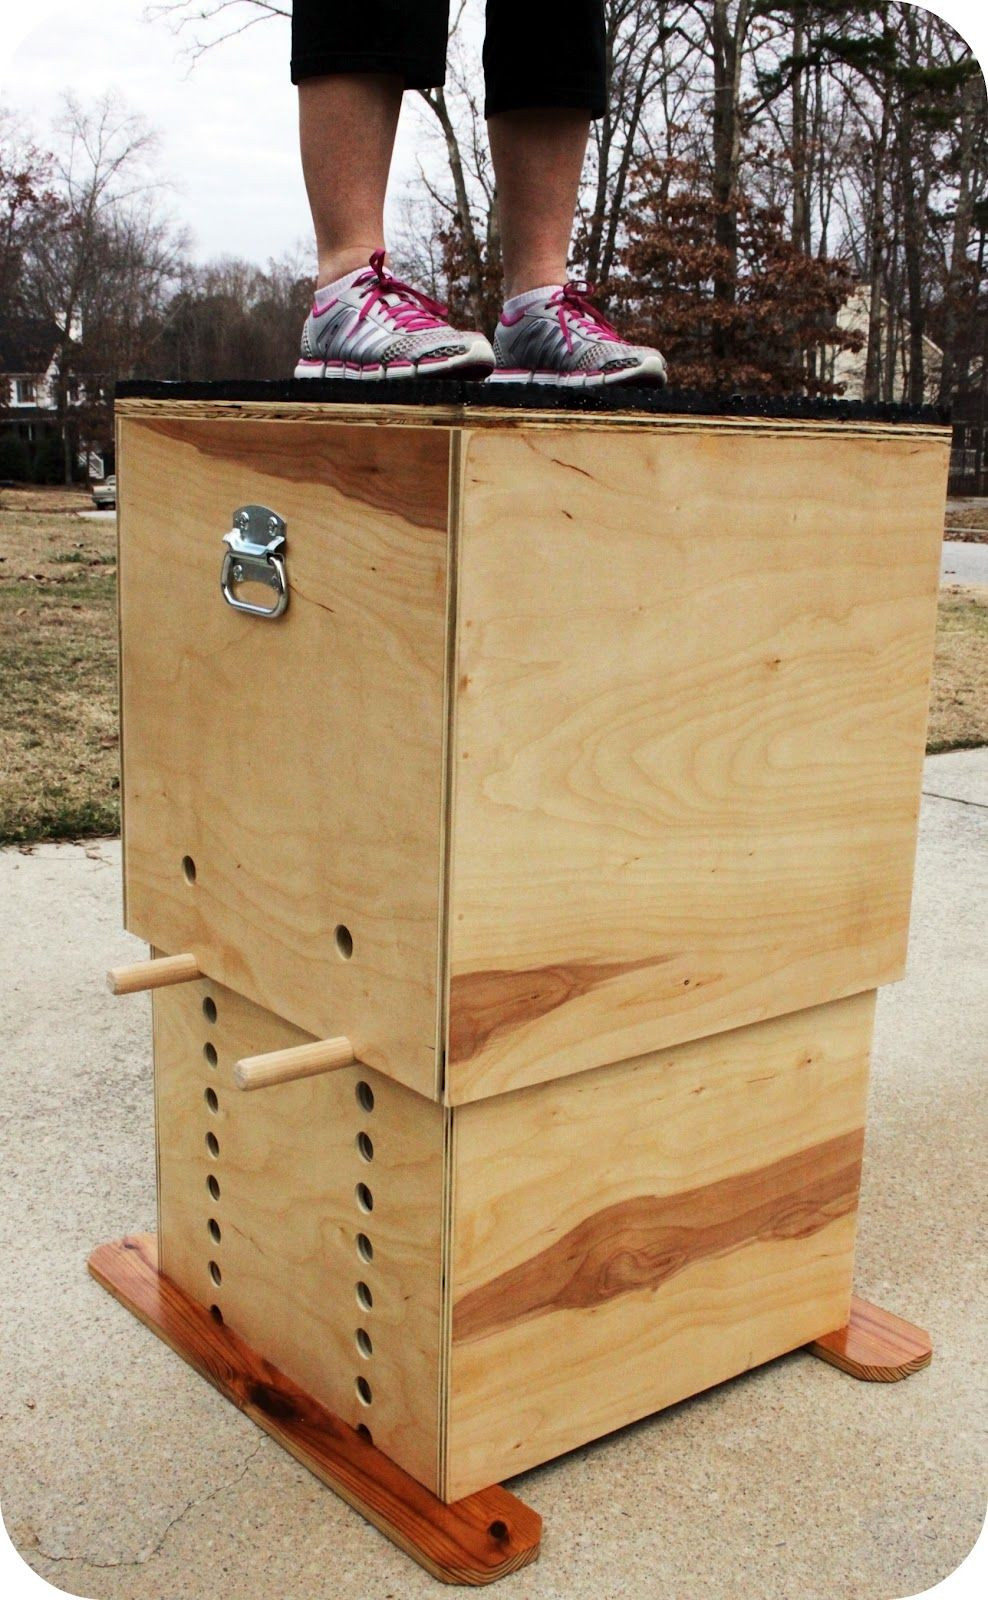 Best ideas about DIY Crossfit Box . Save or Pin TrendyToolbox ADJUSTABLE WOODEN PLYO BOX Now.